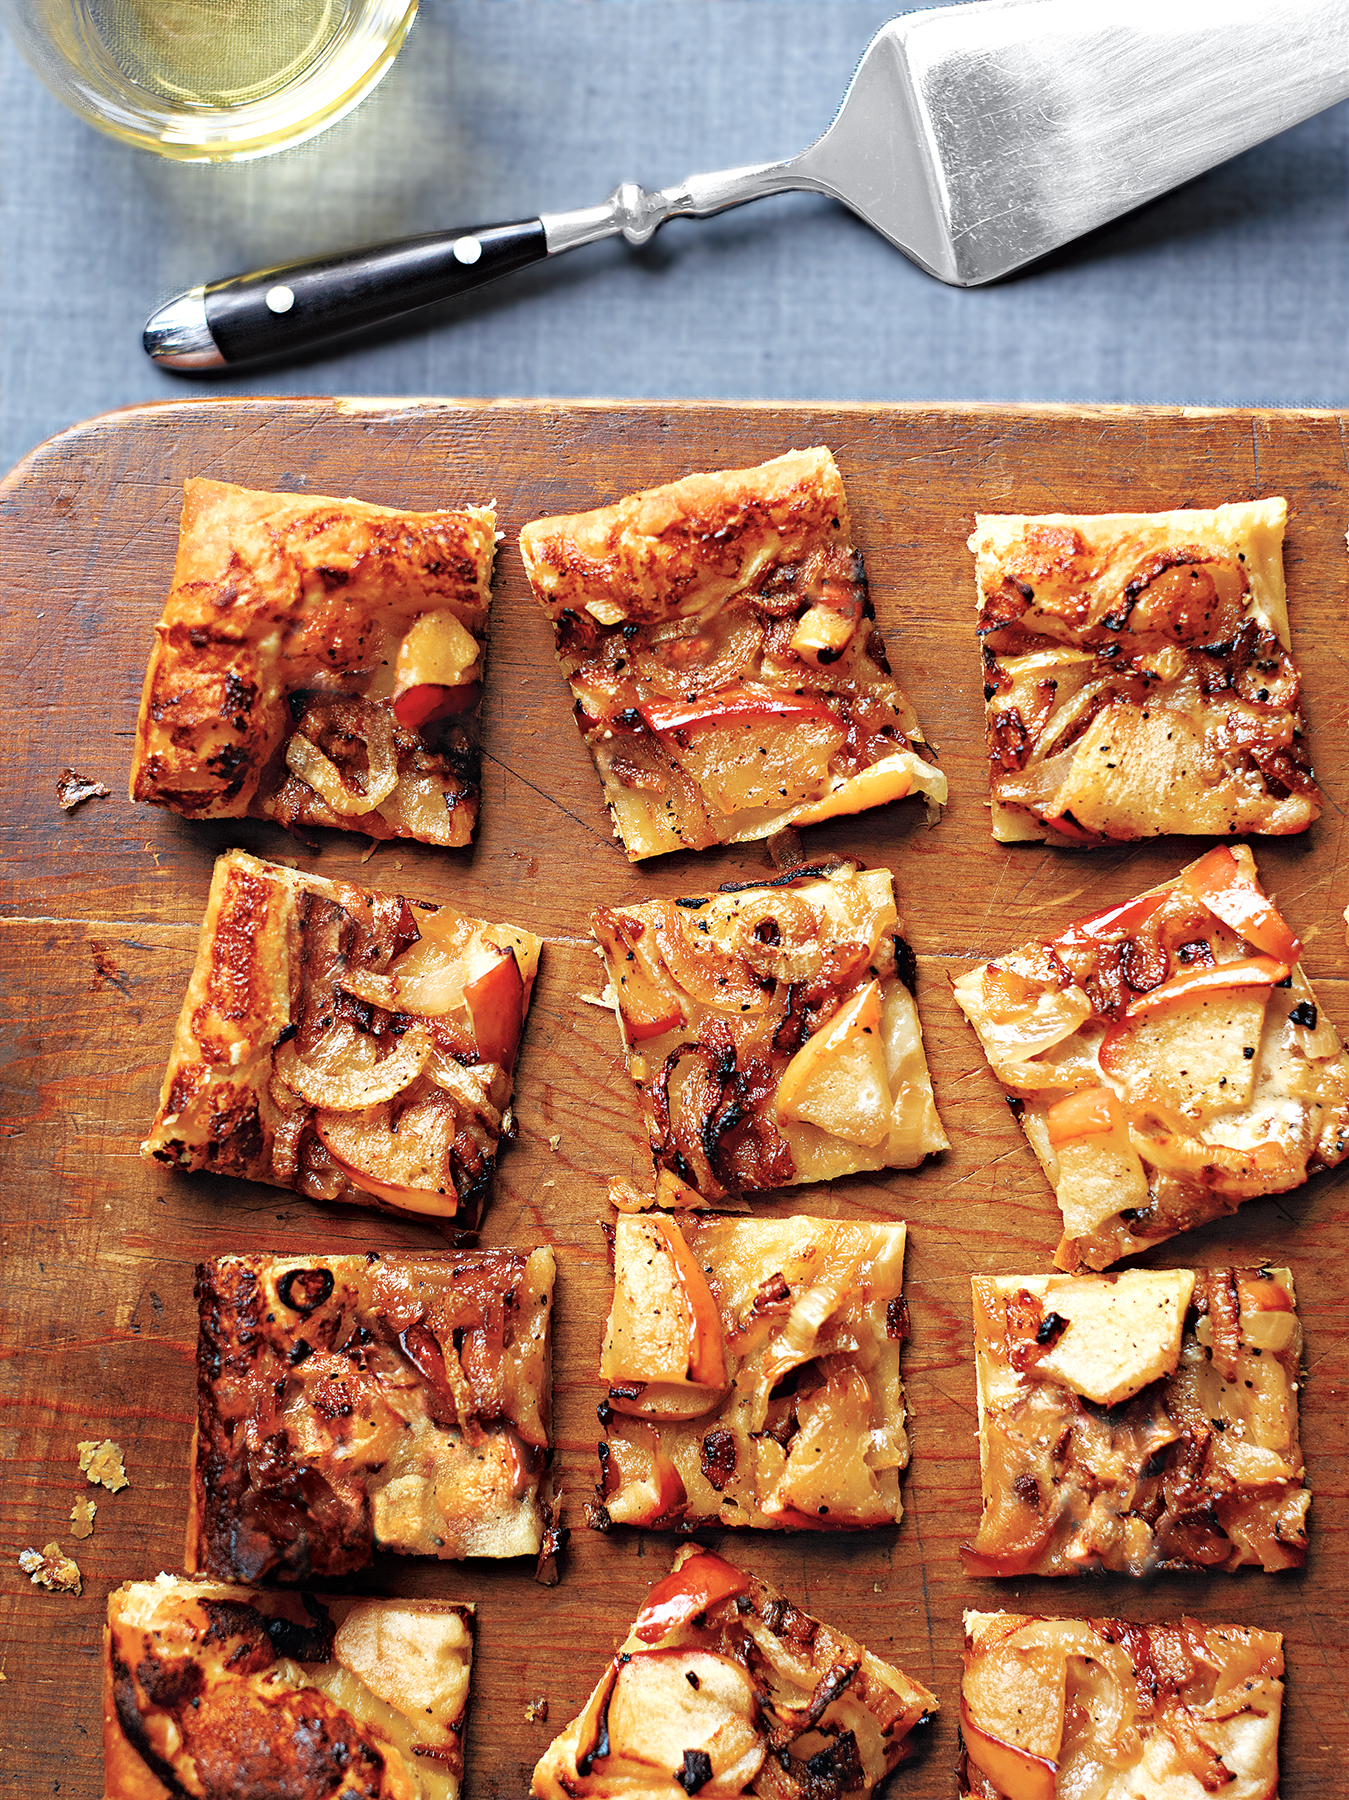 40 Festive, Flavorful Apple Recipes to Make This Fall